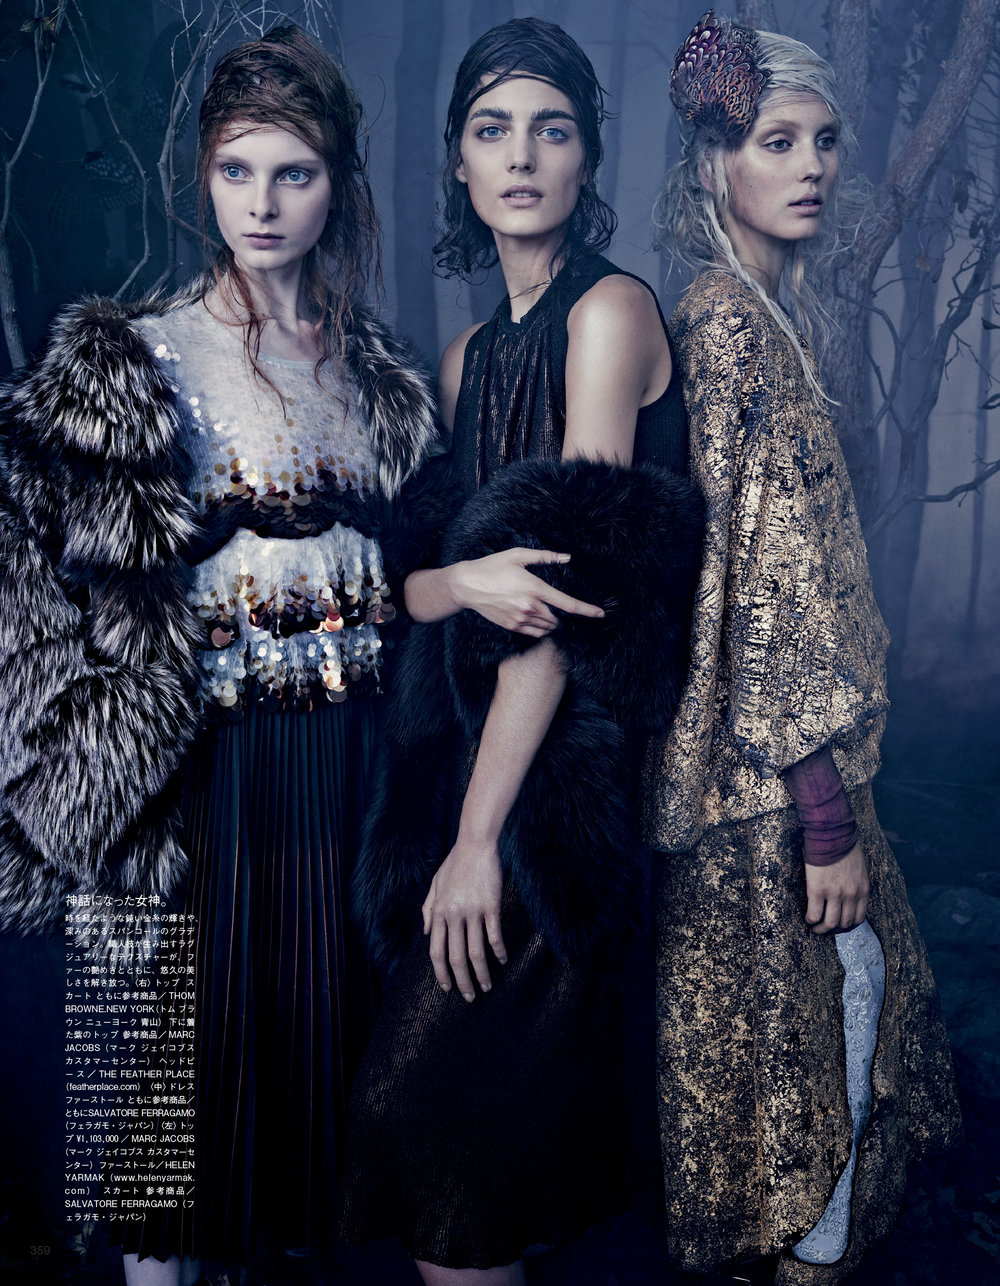 Giovanna-Battaglia-Into-The-Woods-Vogue-Japan-Emma-Summerton-08.jpg